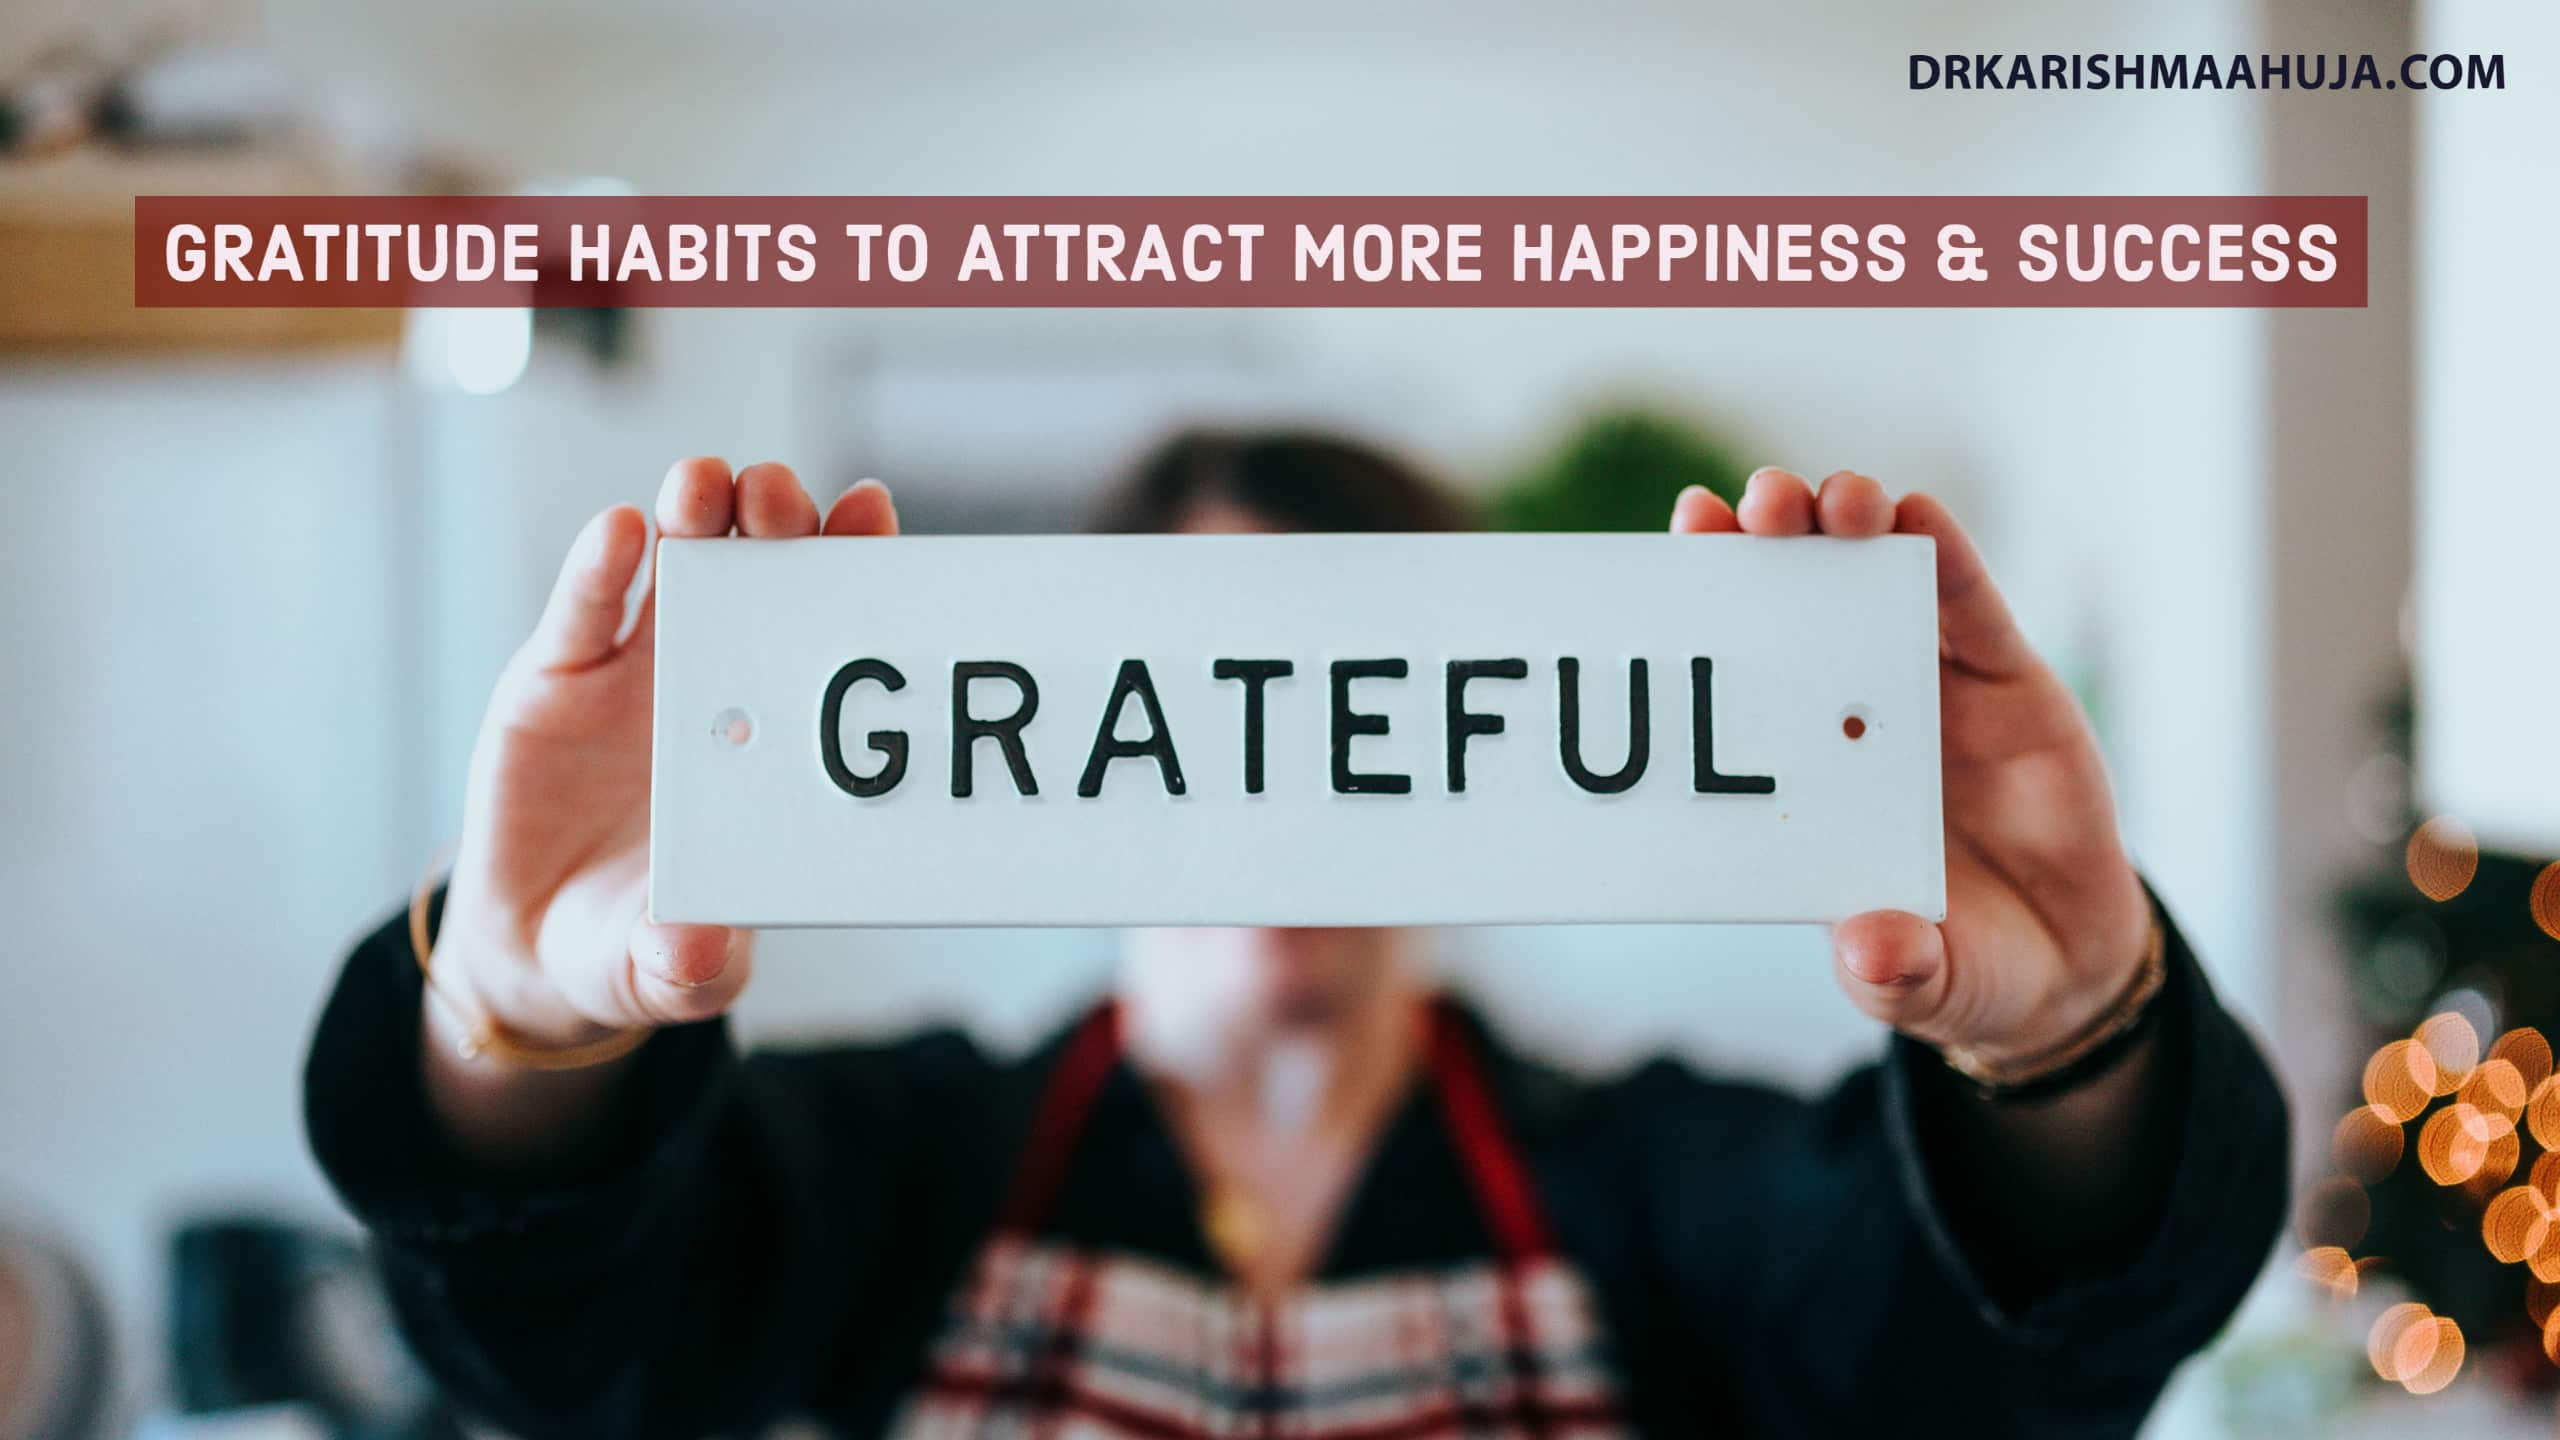 Gratitude Habits to Attract more Happiness and Success in life